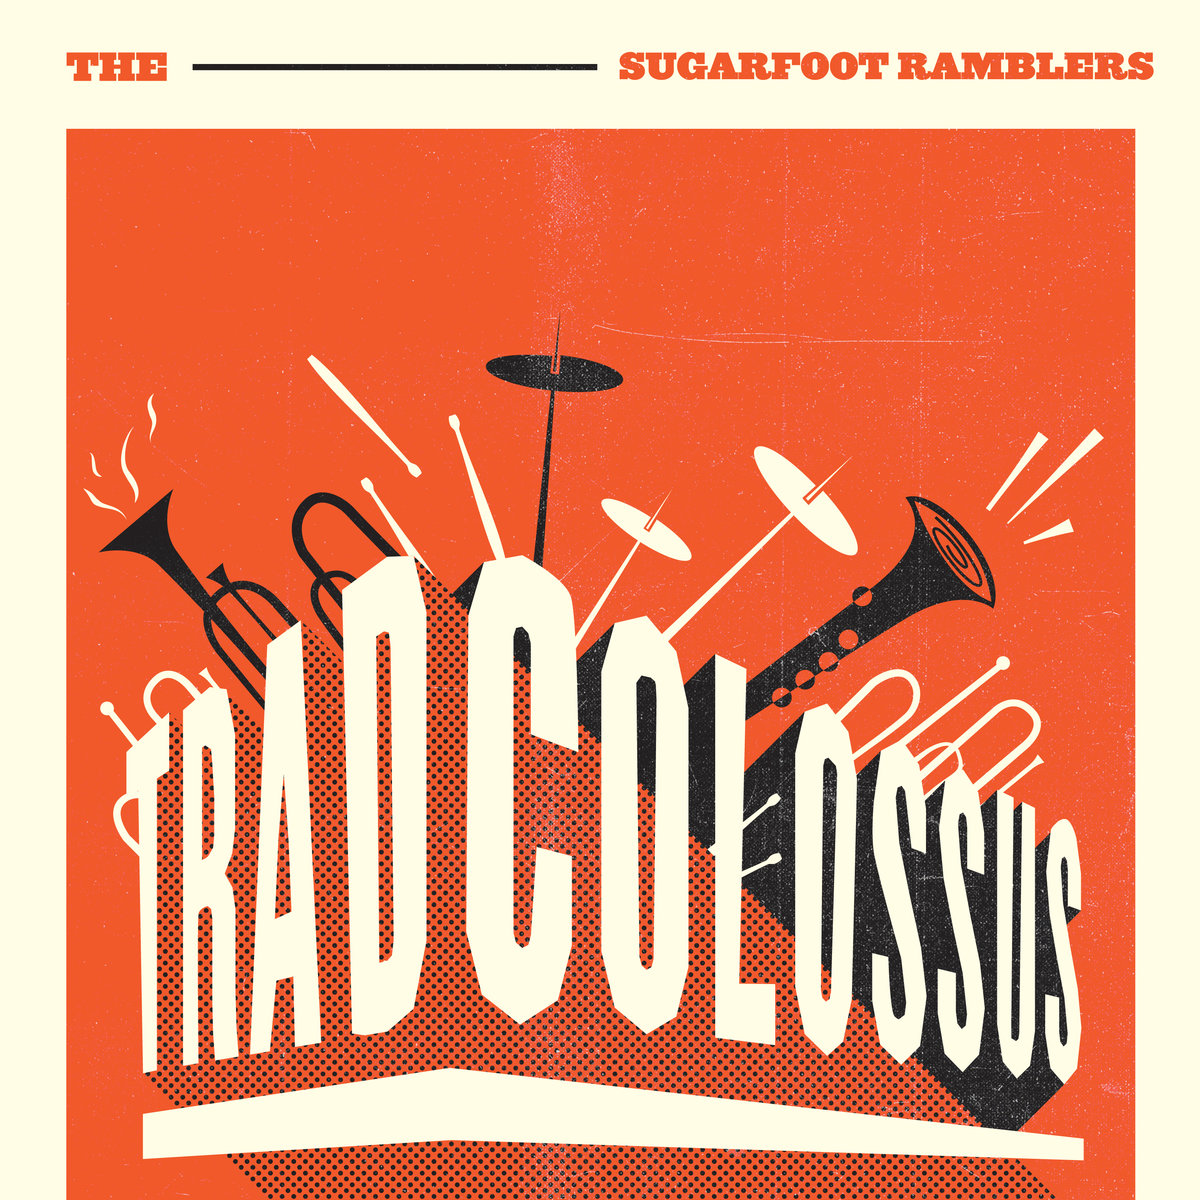 Second release from the Sugarfoot Ramblers, Trad Colosuss. Recorded, Mixed and Mastered by Myles Mumford at Rolling Stock Recording Rooms